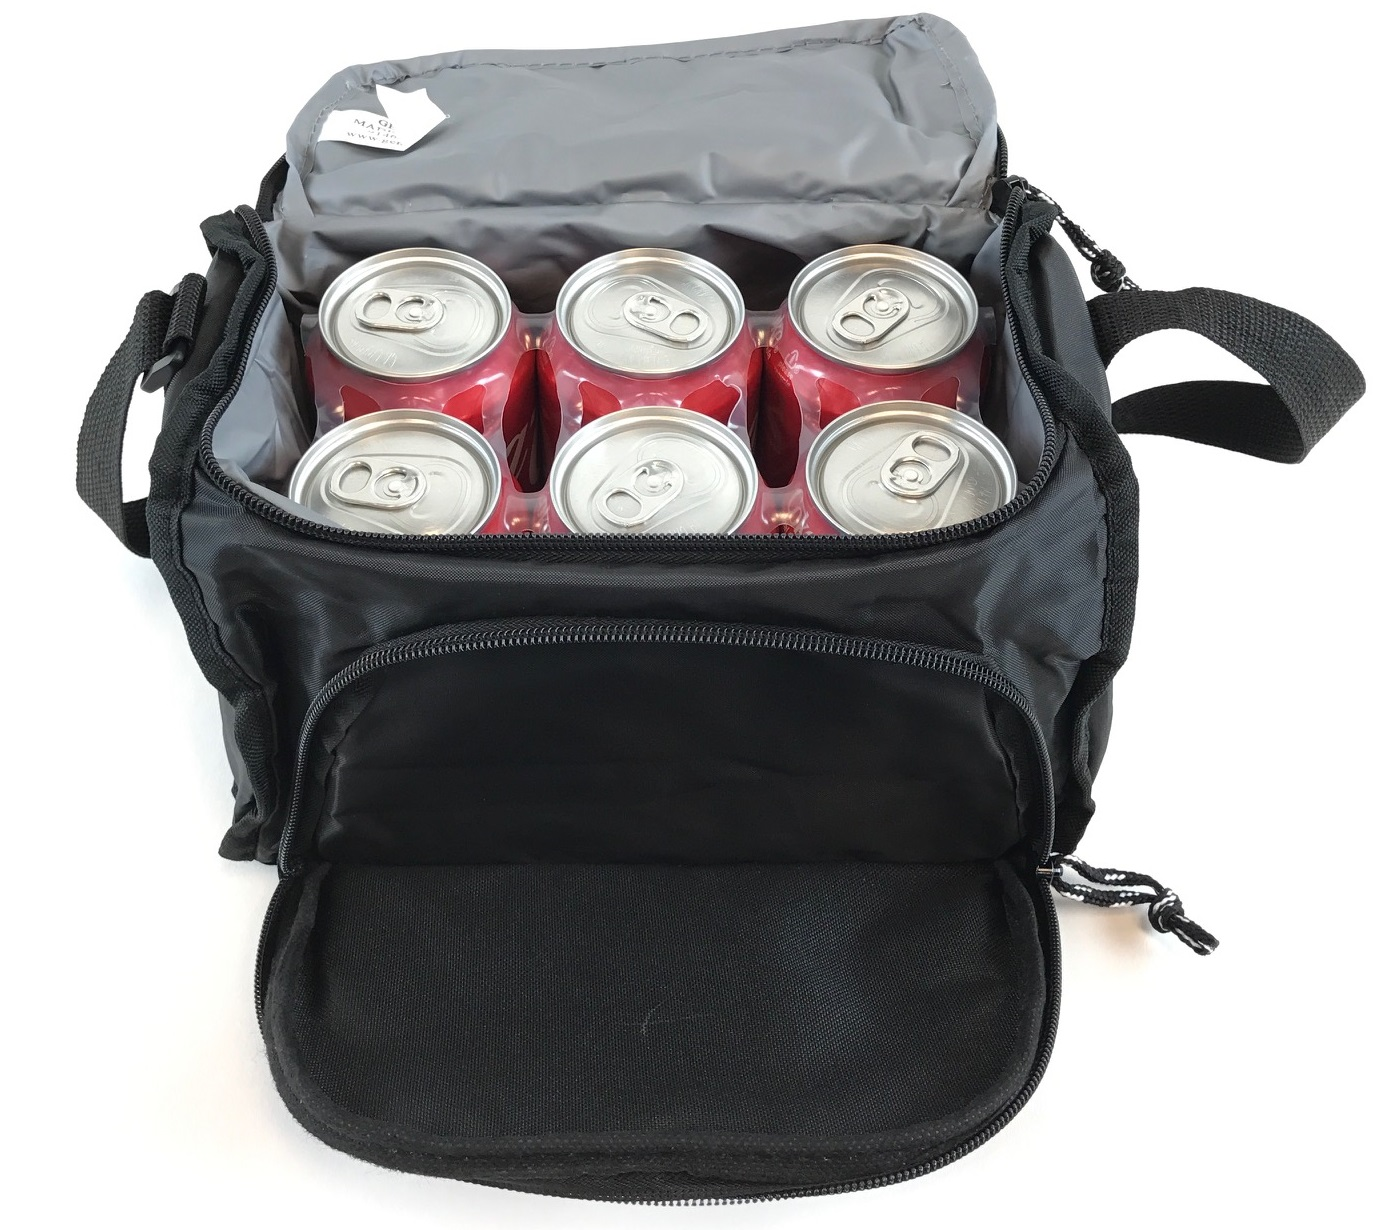 Jeep Insulated Lunch Bag Cooler - JustForJeeps.com #9147